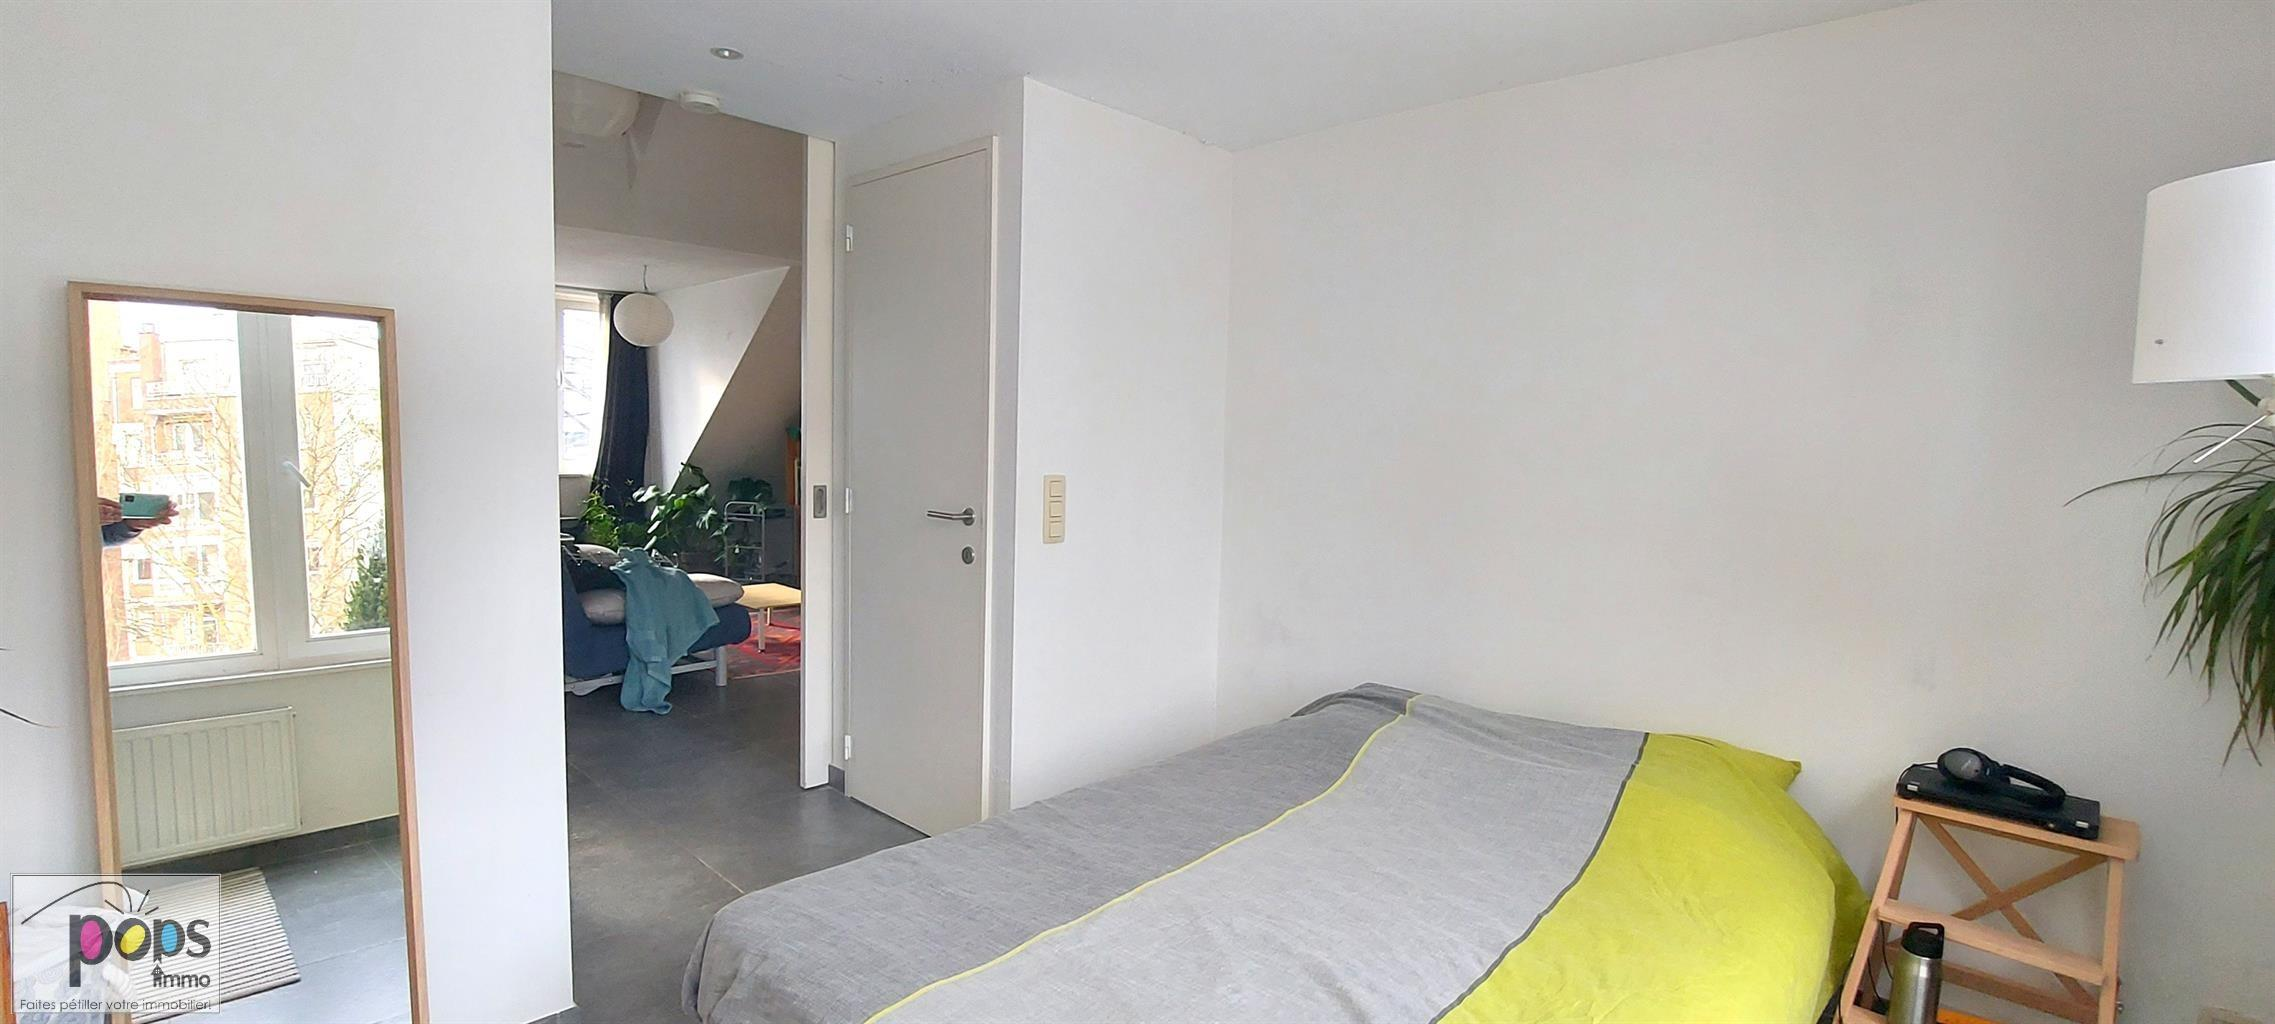 Appartement - Uccle - #4294712-11